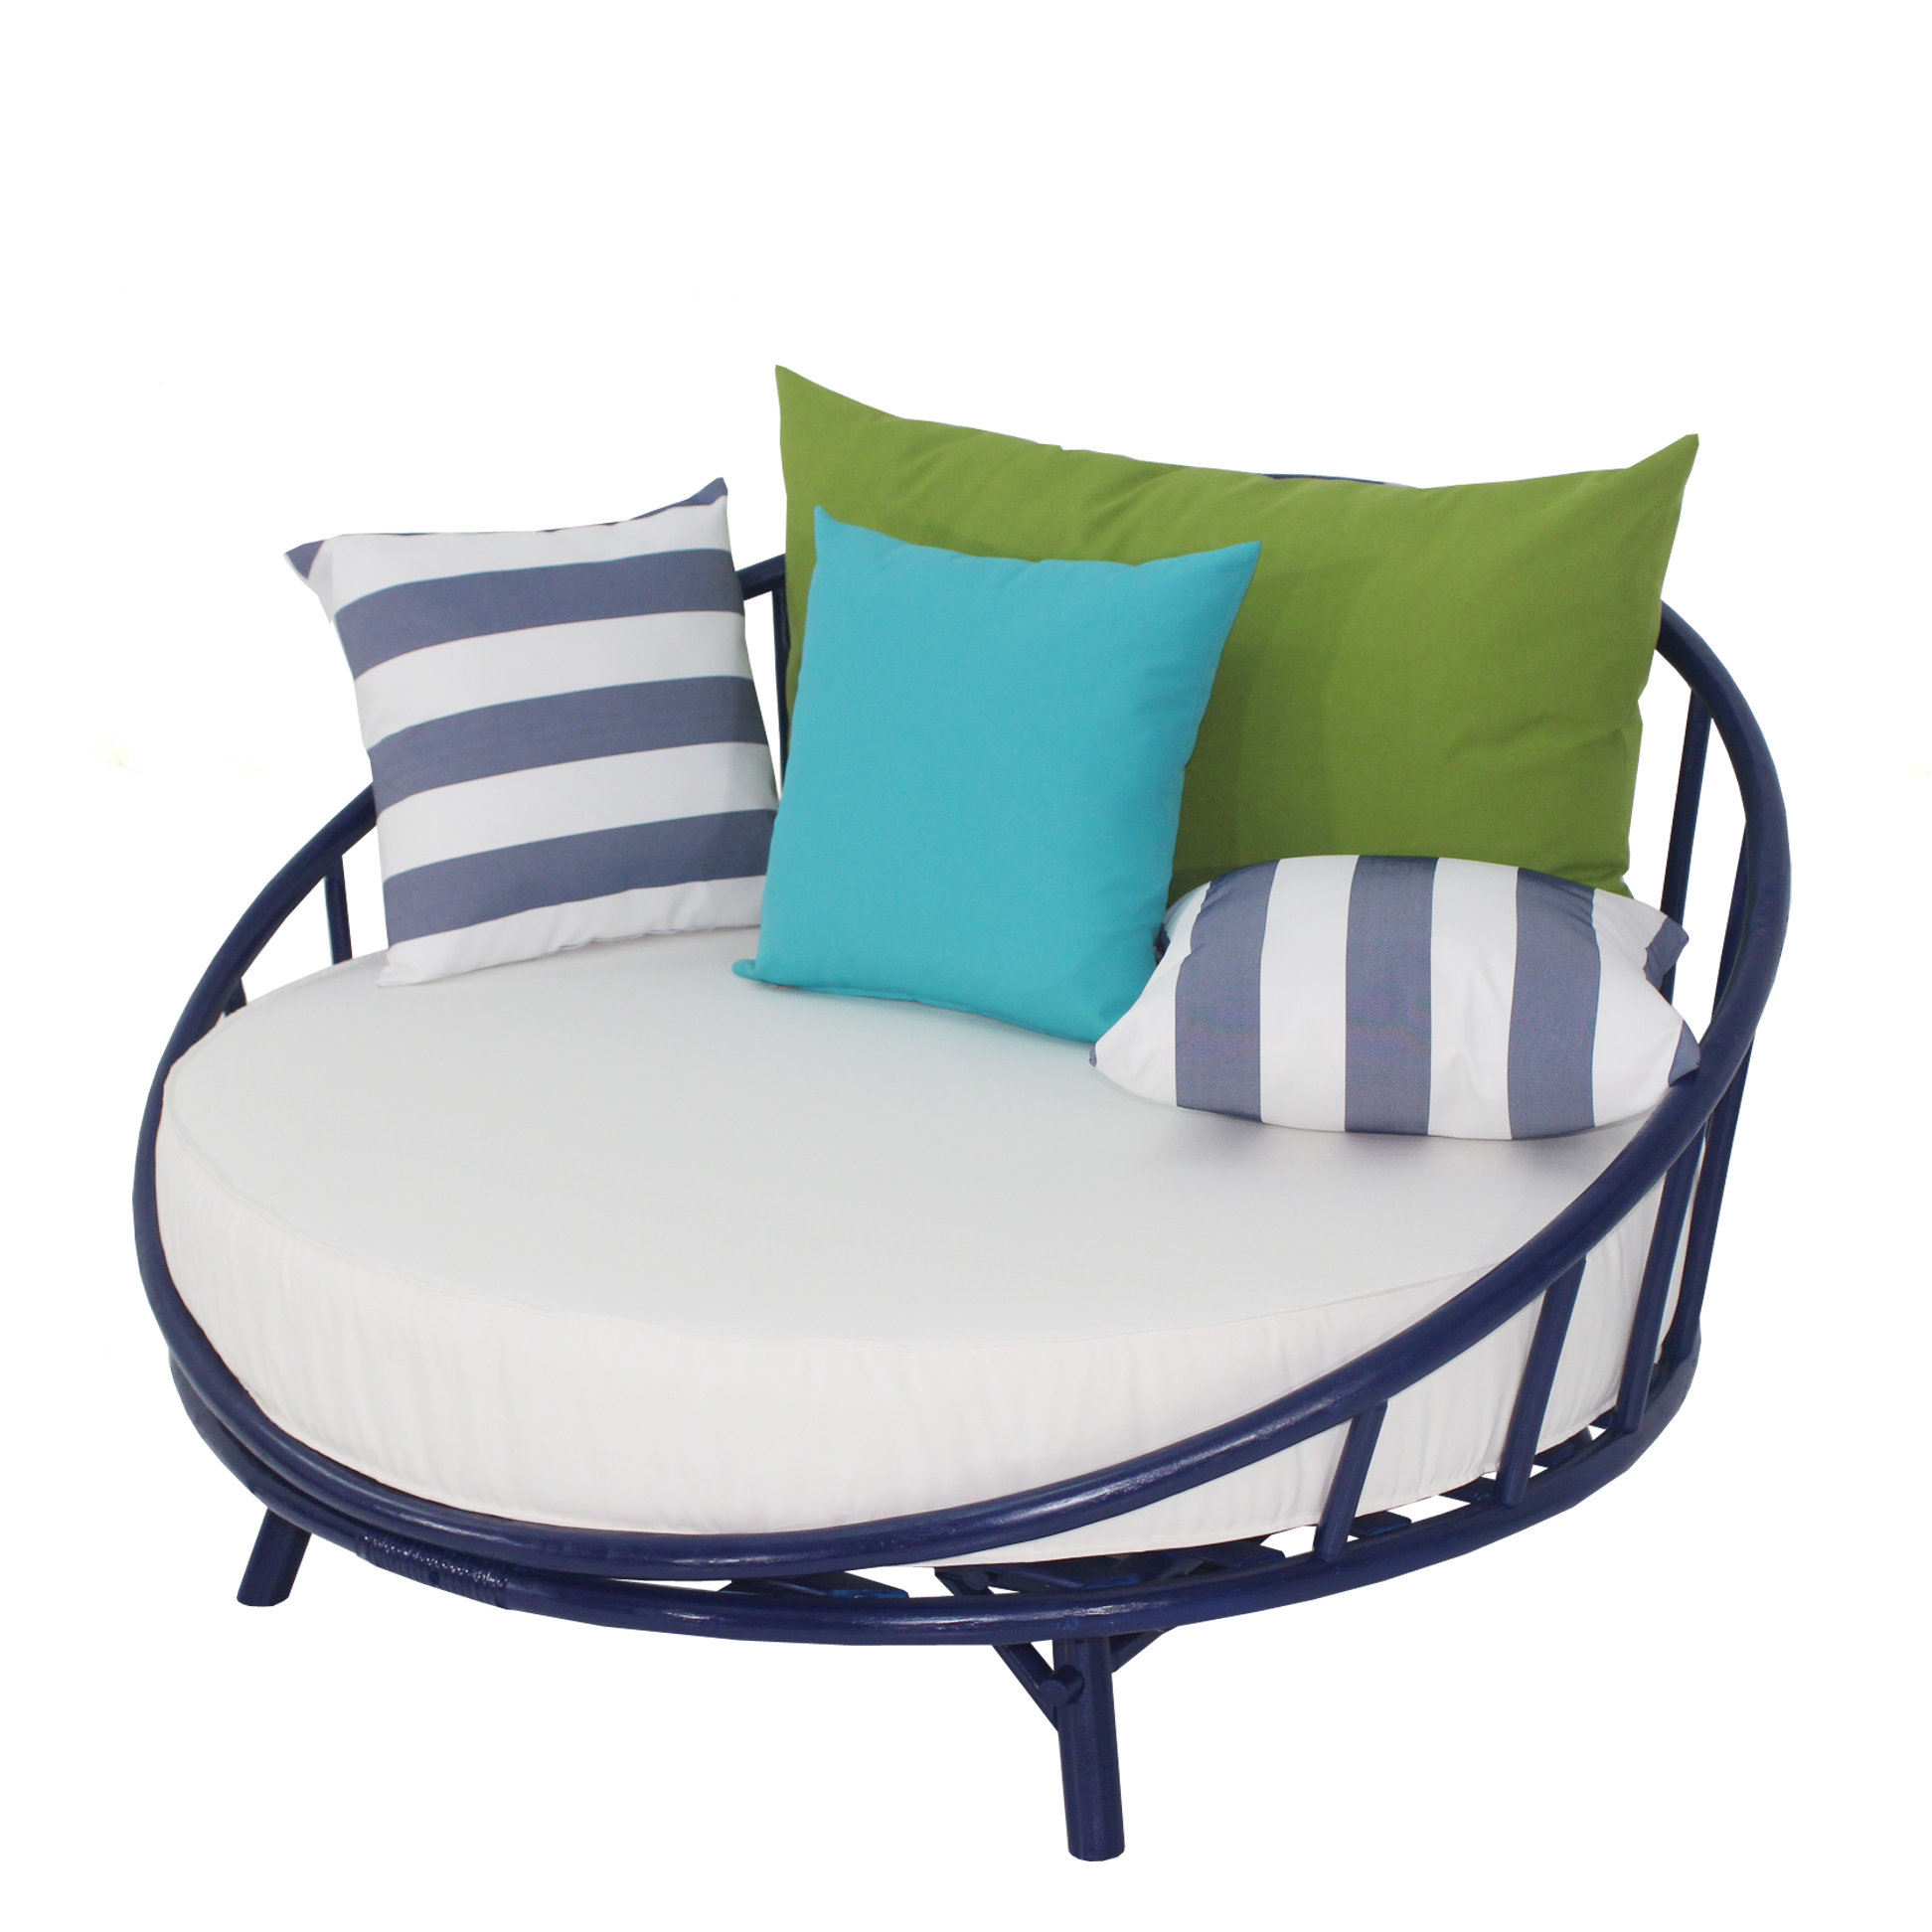 Olu Bamboo Large Round Patio Daybeds With Cushions Pertaining To Preferred Olu Bamboo Large Round Patio Daybed With Cushions (View 11 of 20)